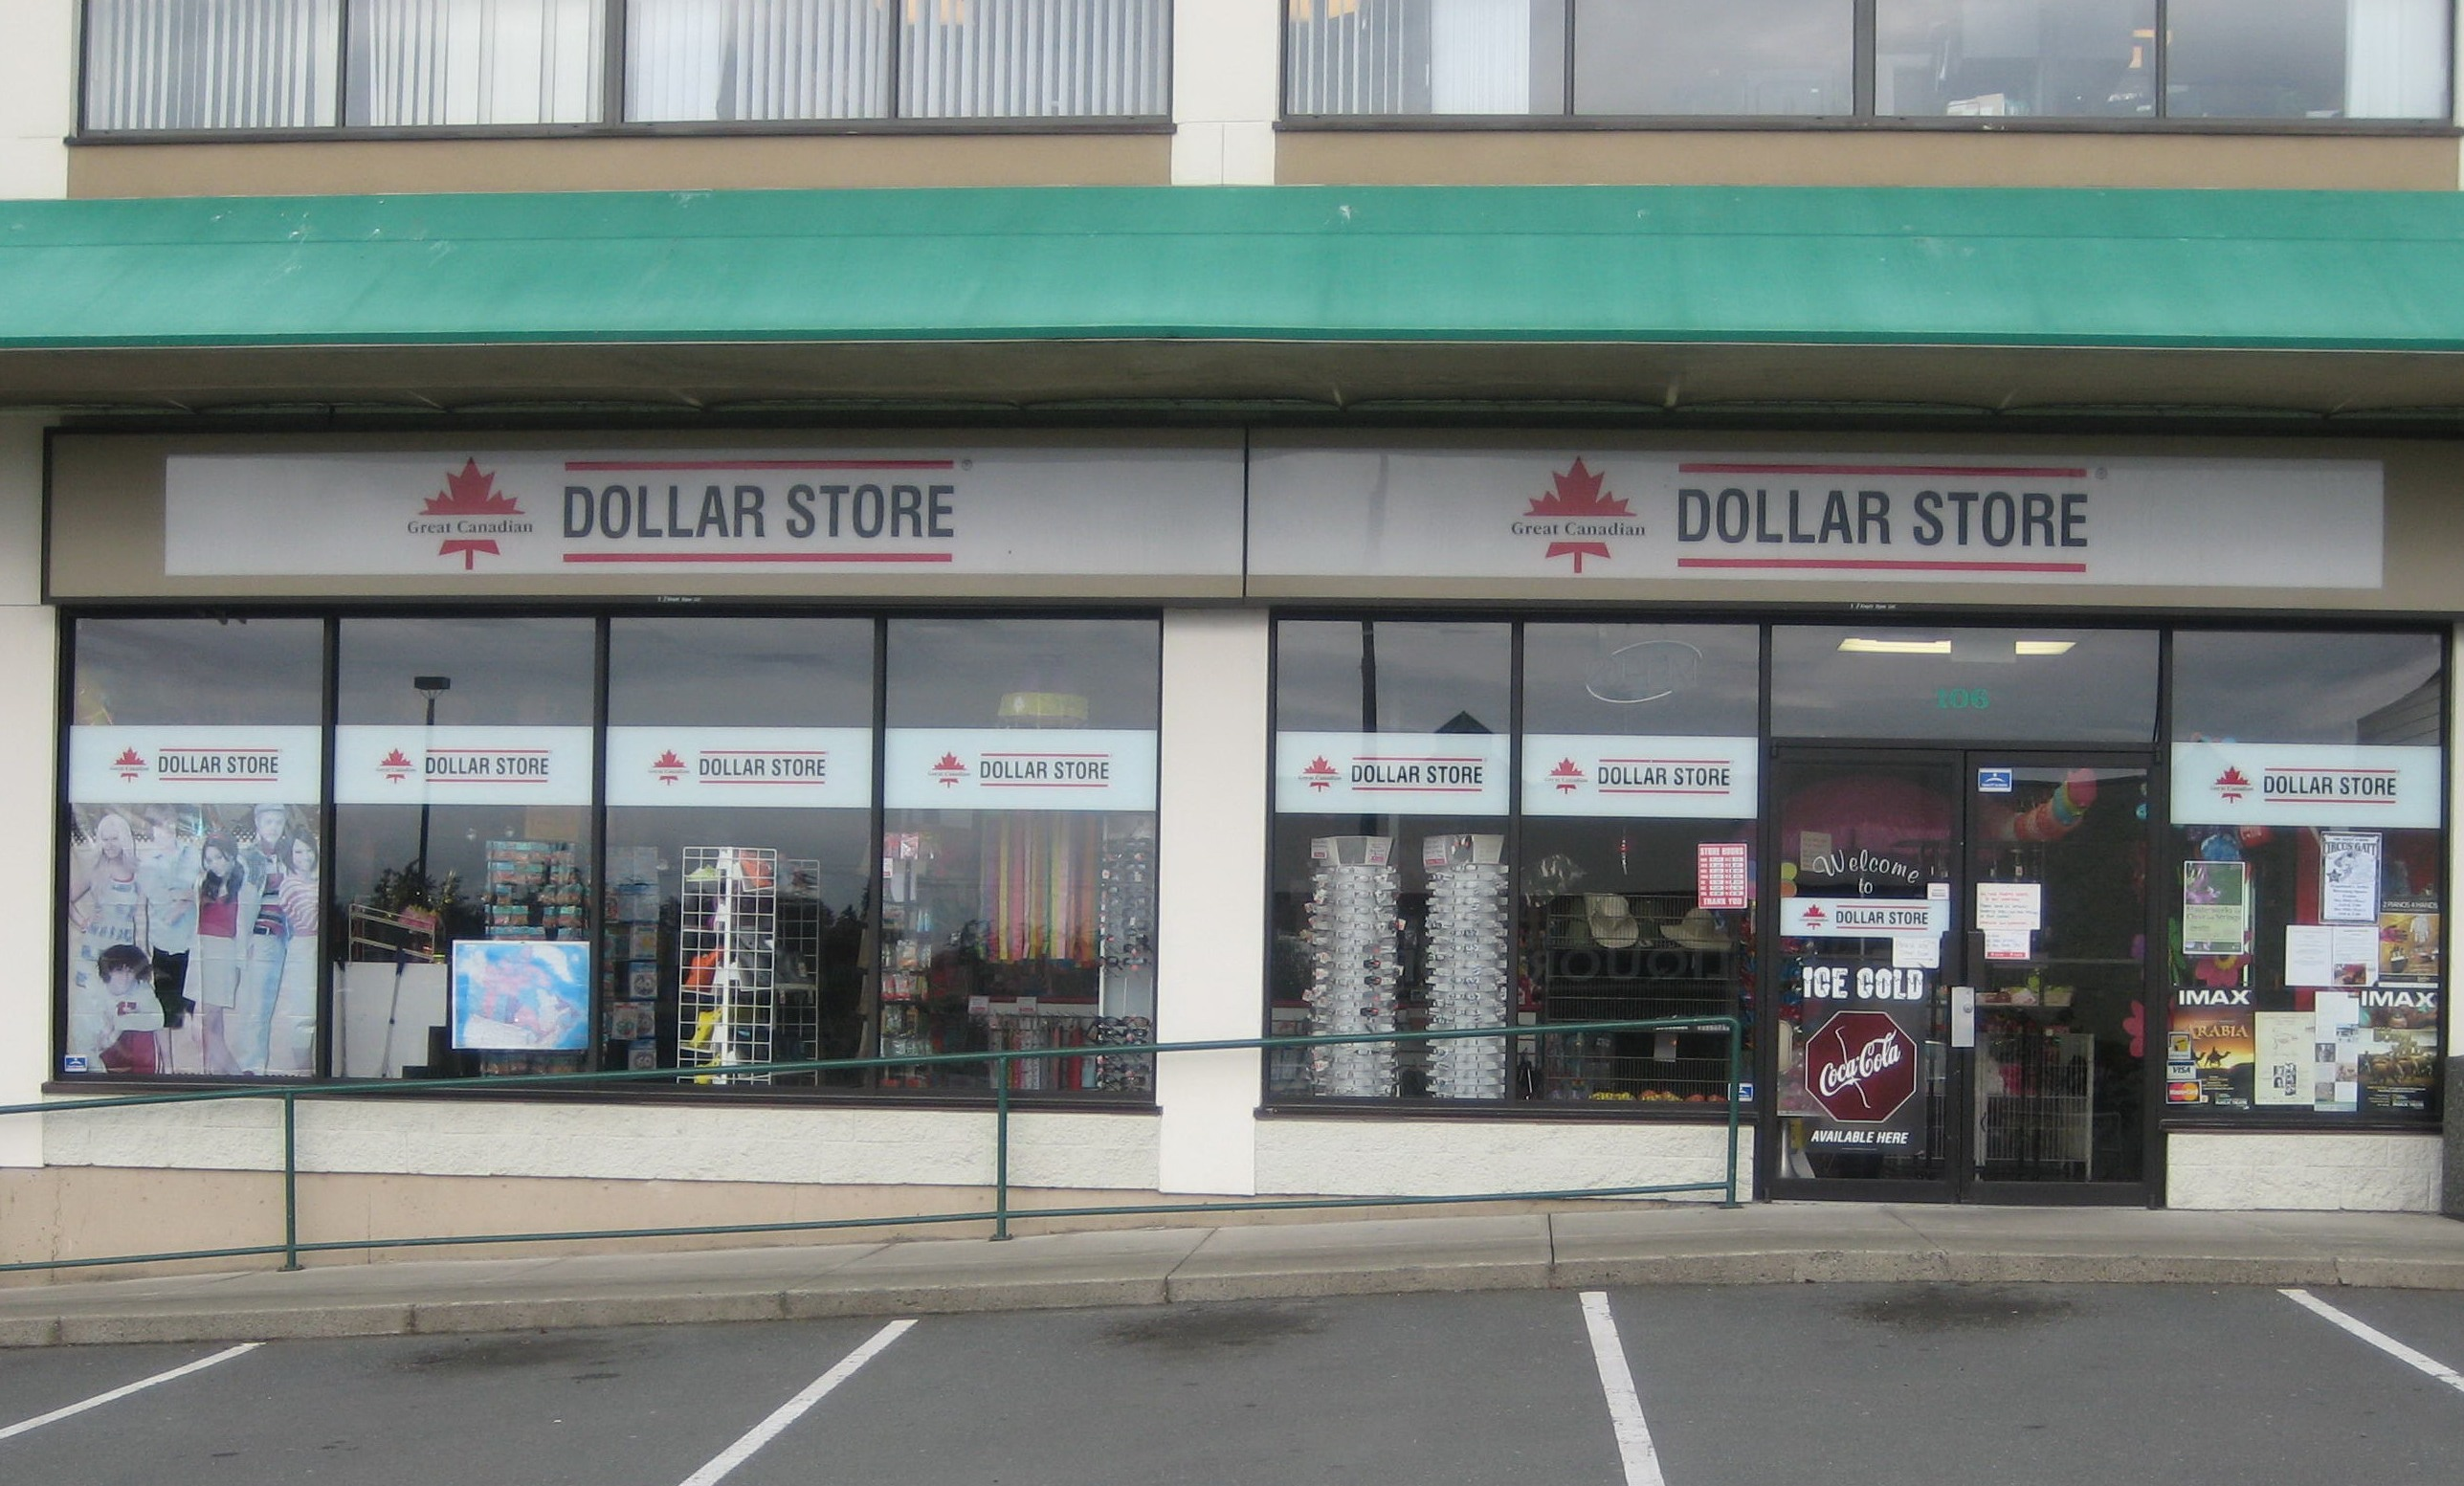 Store Front Picture of Great Canadian Dollar Storesjpg 2575x1553